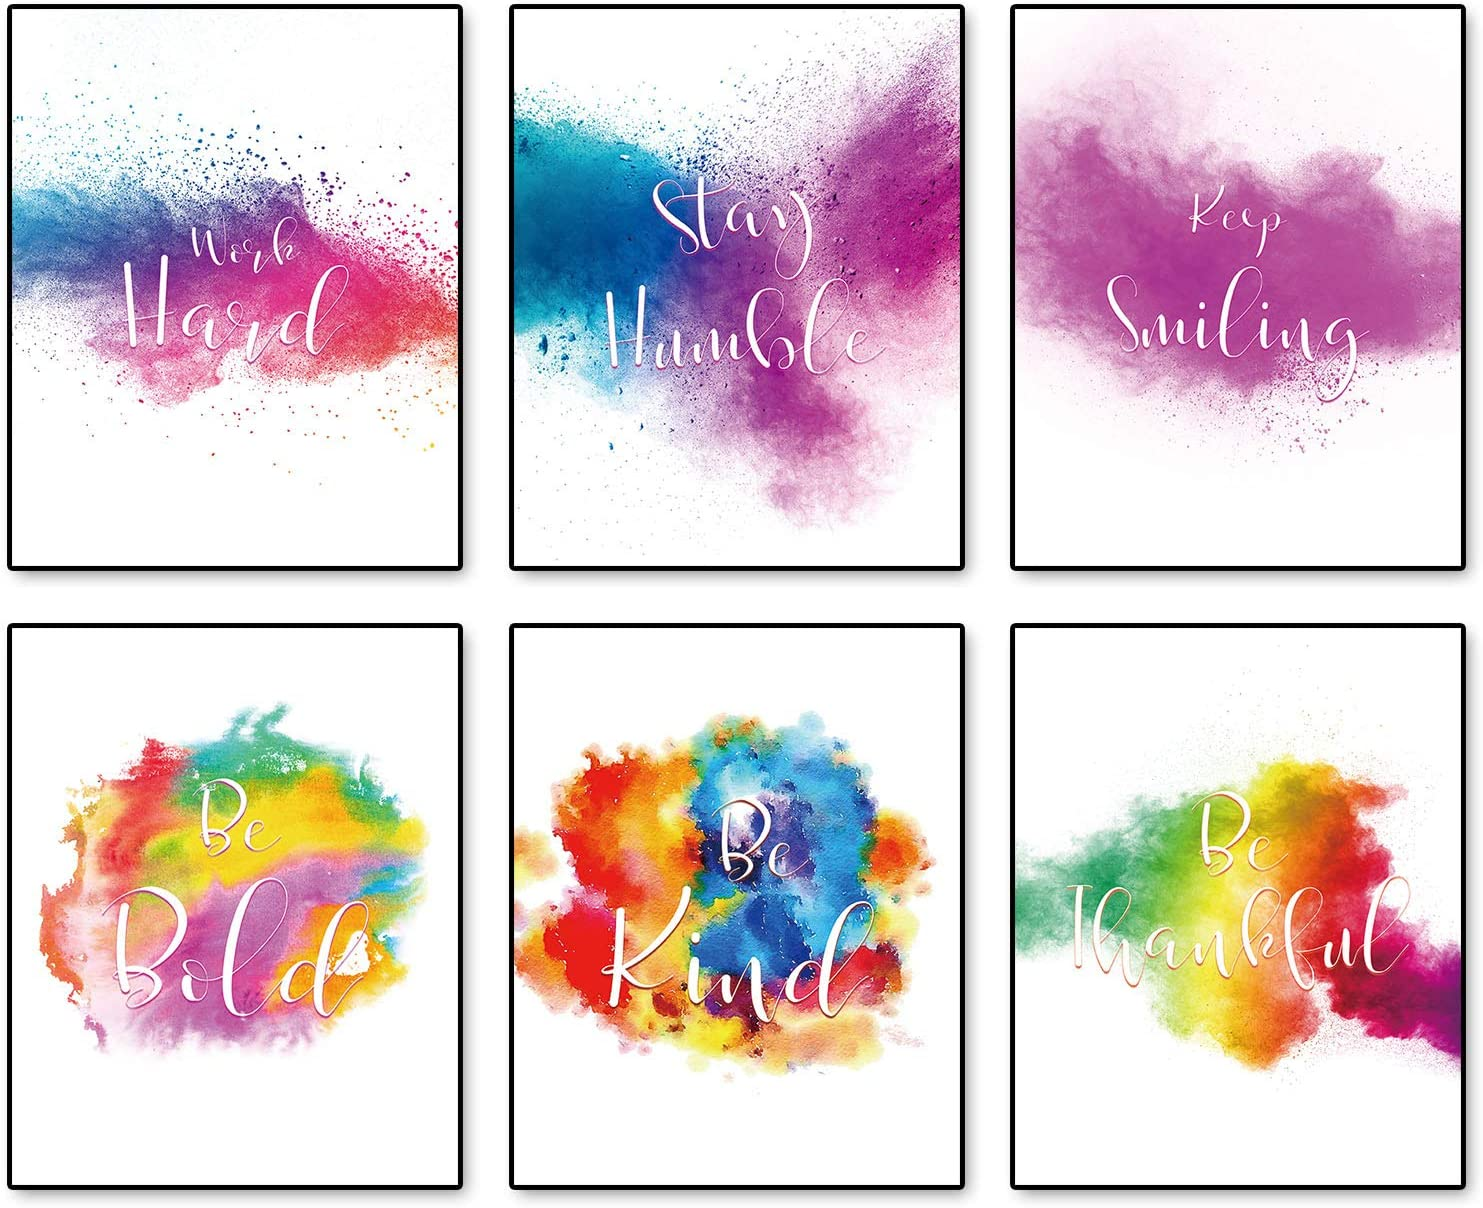 """Colorful Abstract Paint Graffiti Inspirational Motivational Poster Abstract Wall Art Prints Set of 6 (8""""X10""""Canvas Picture) Children Bedroom or Playroom Teen Room Classroom Office Home Decor No Frame"""